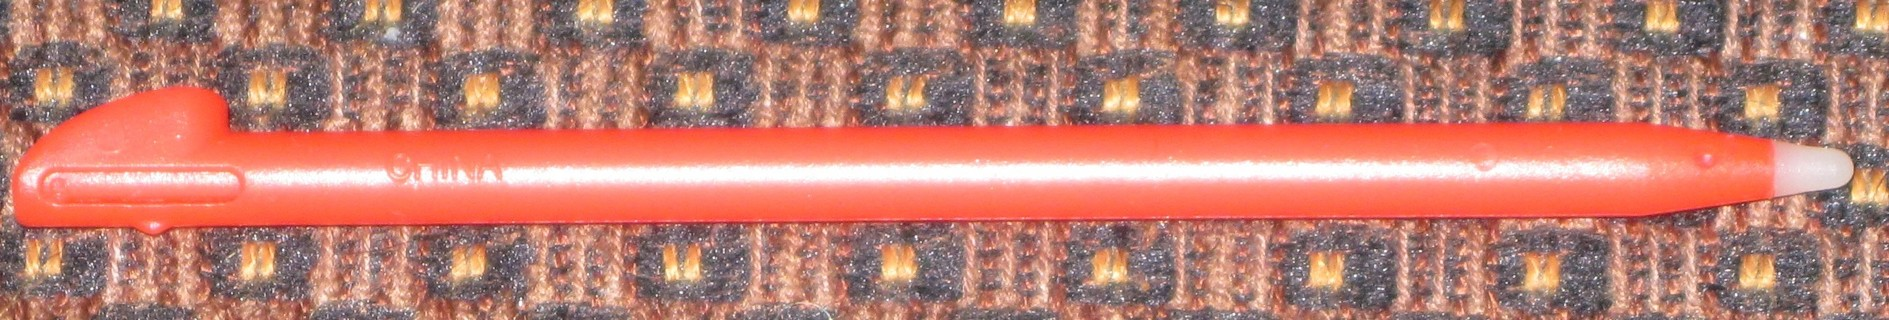 Small red stylus